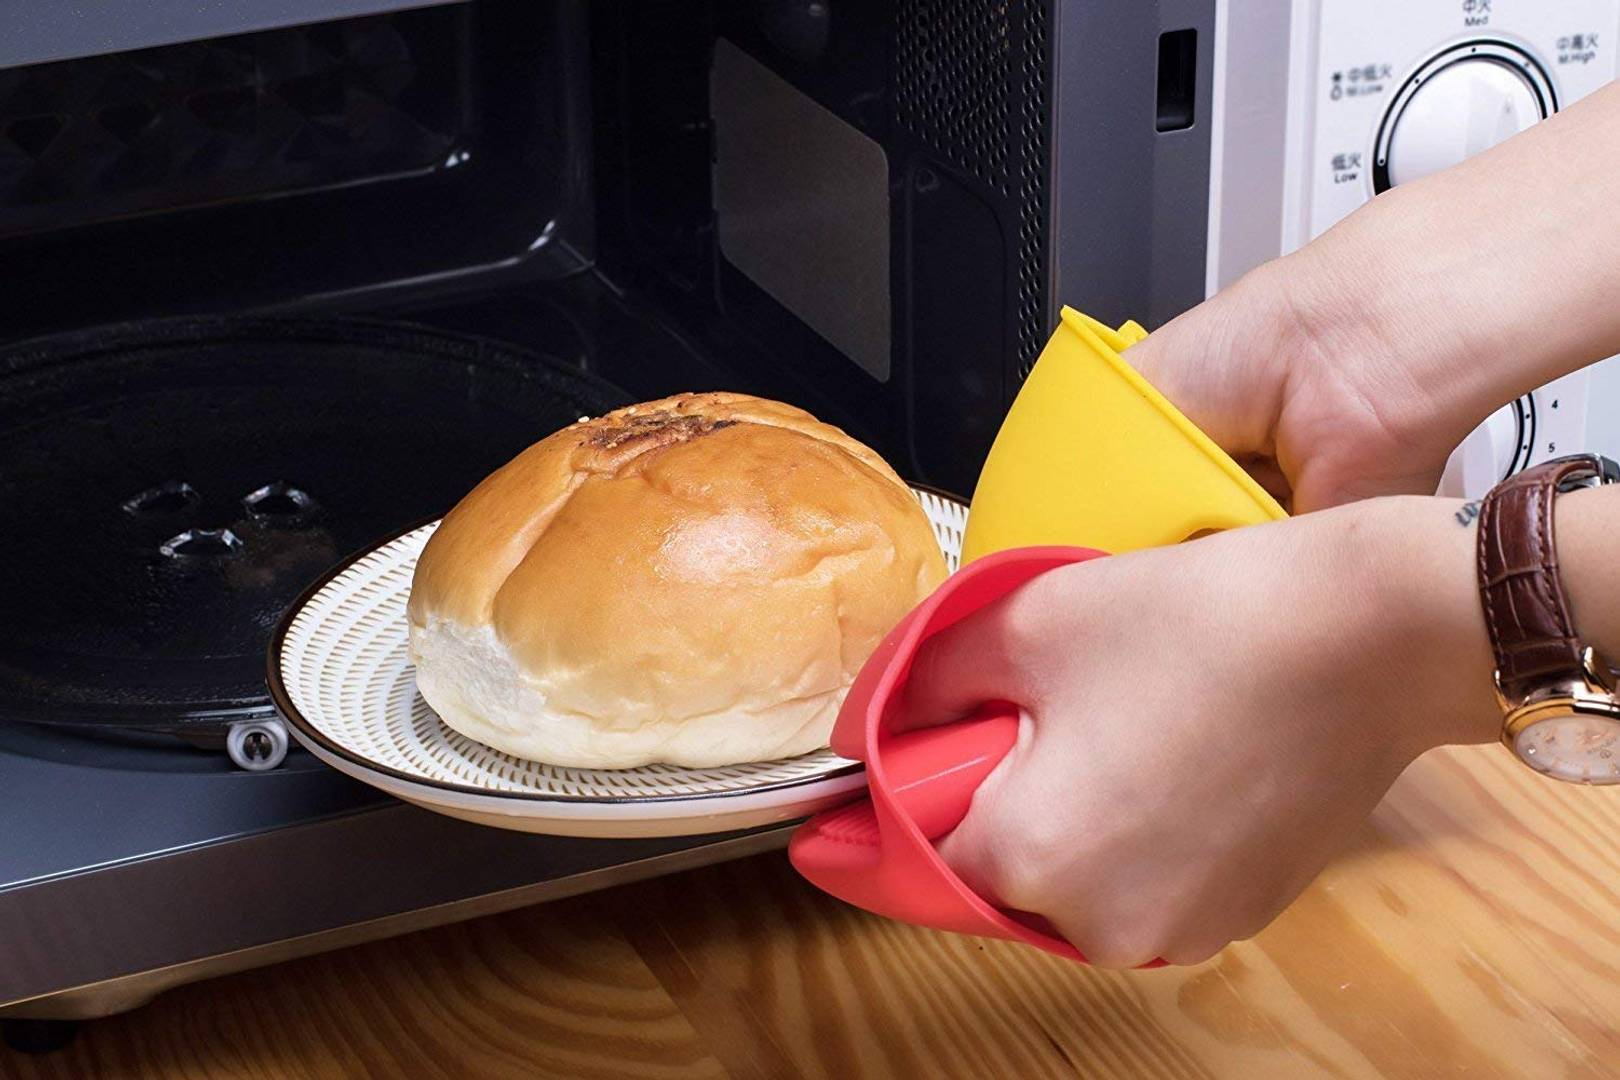 Heat Resistant Bird Shape Silicone Kitchen Cooking Oven Mitts Hand Clip Finger Glove (Assorted) - Pack Of 2